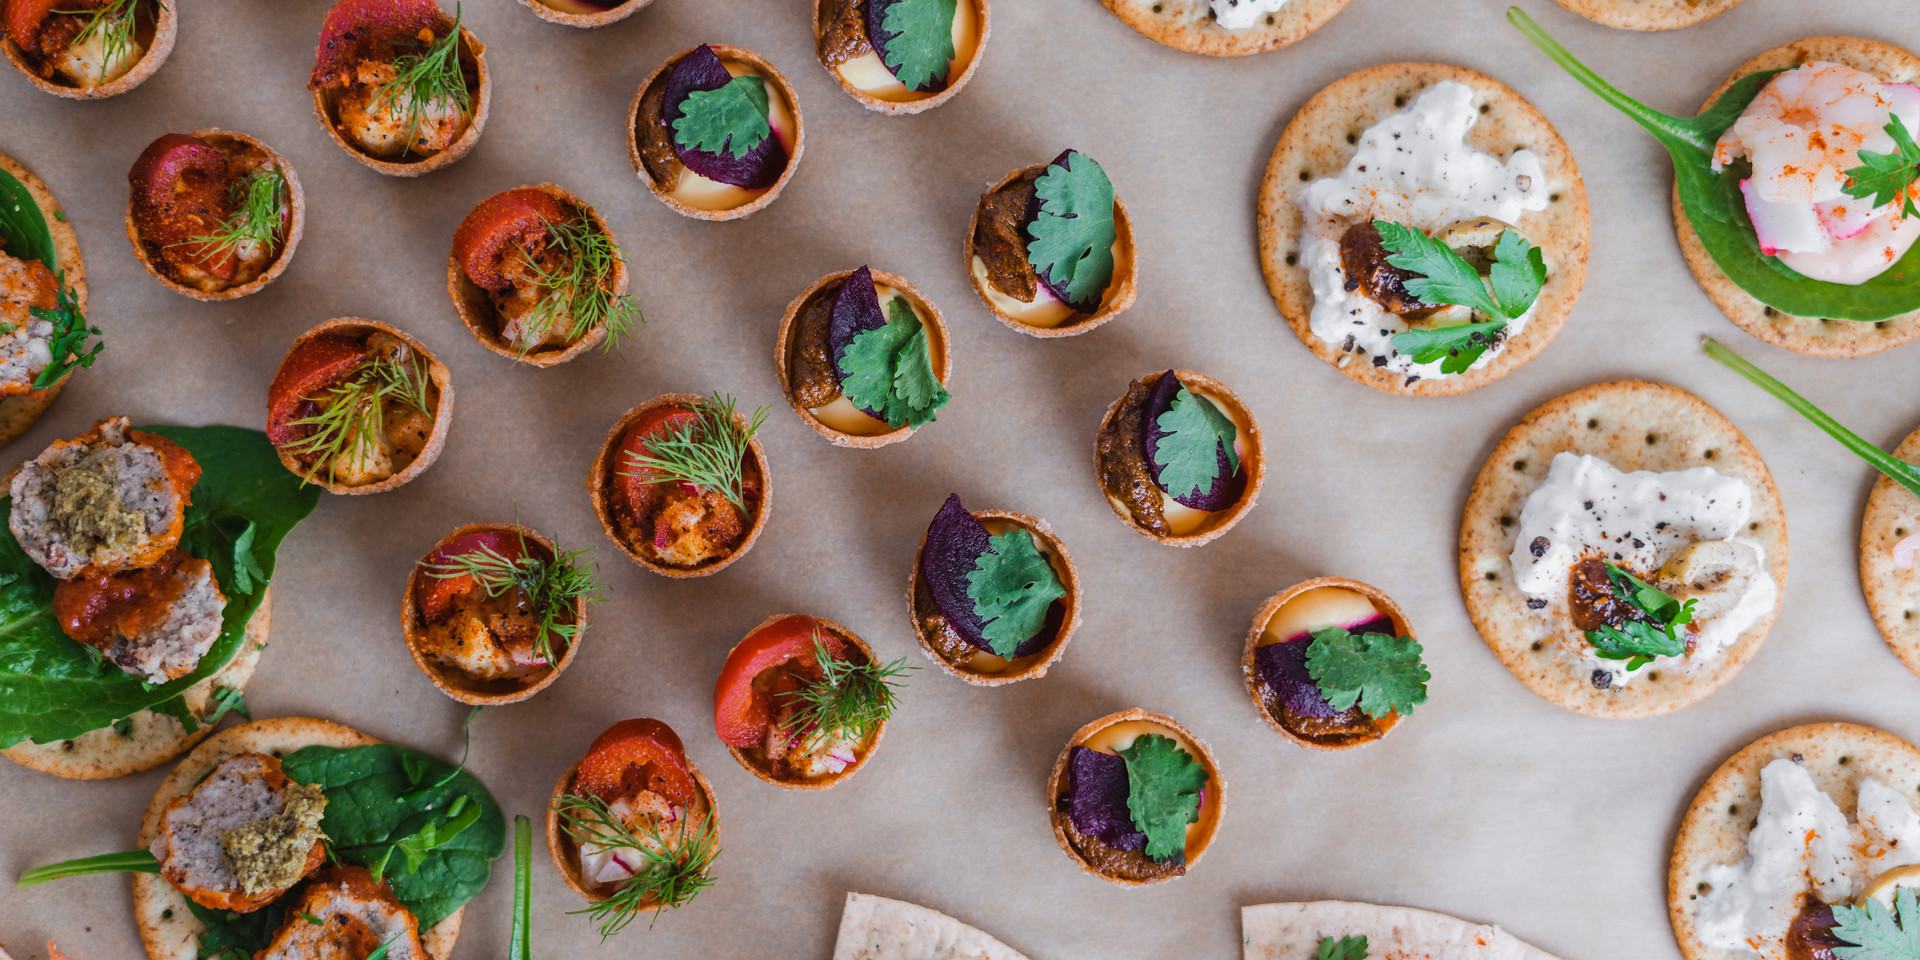 Canapés and small bites